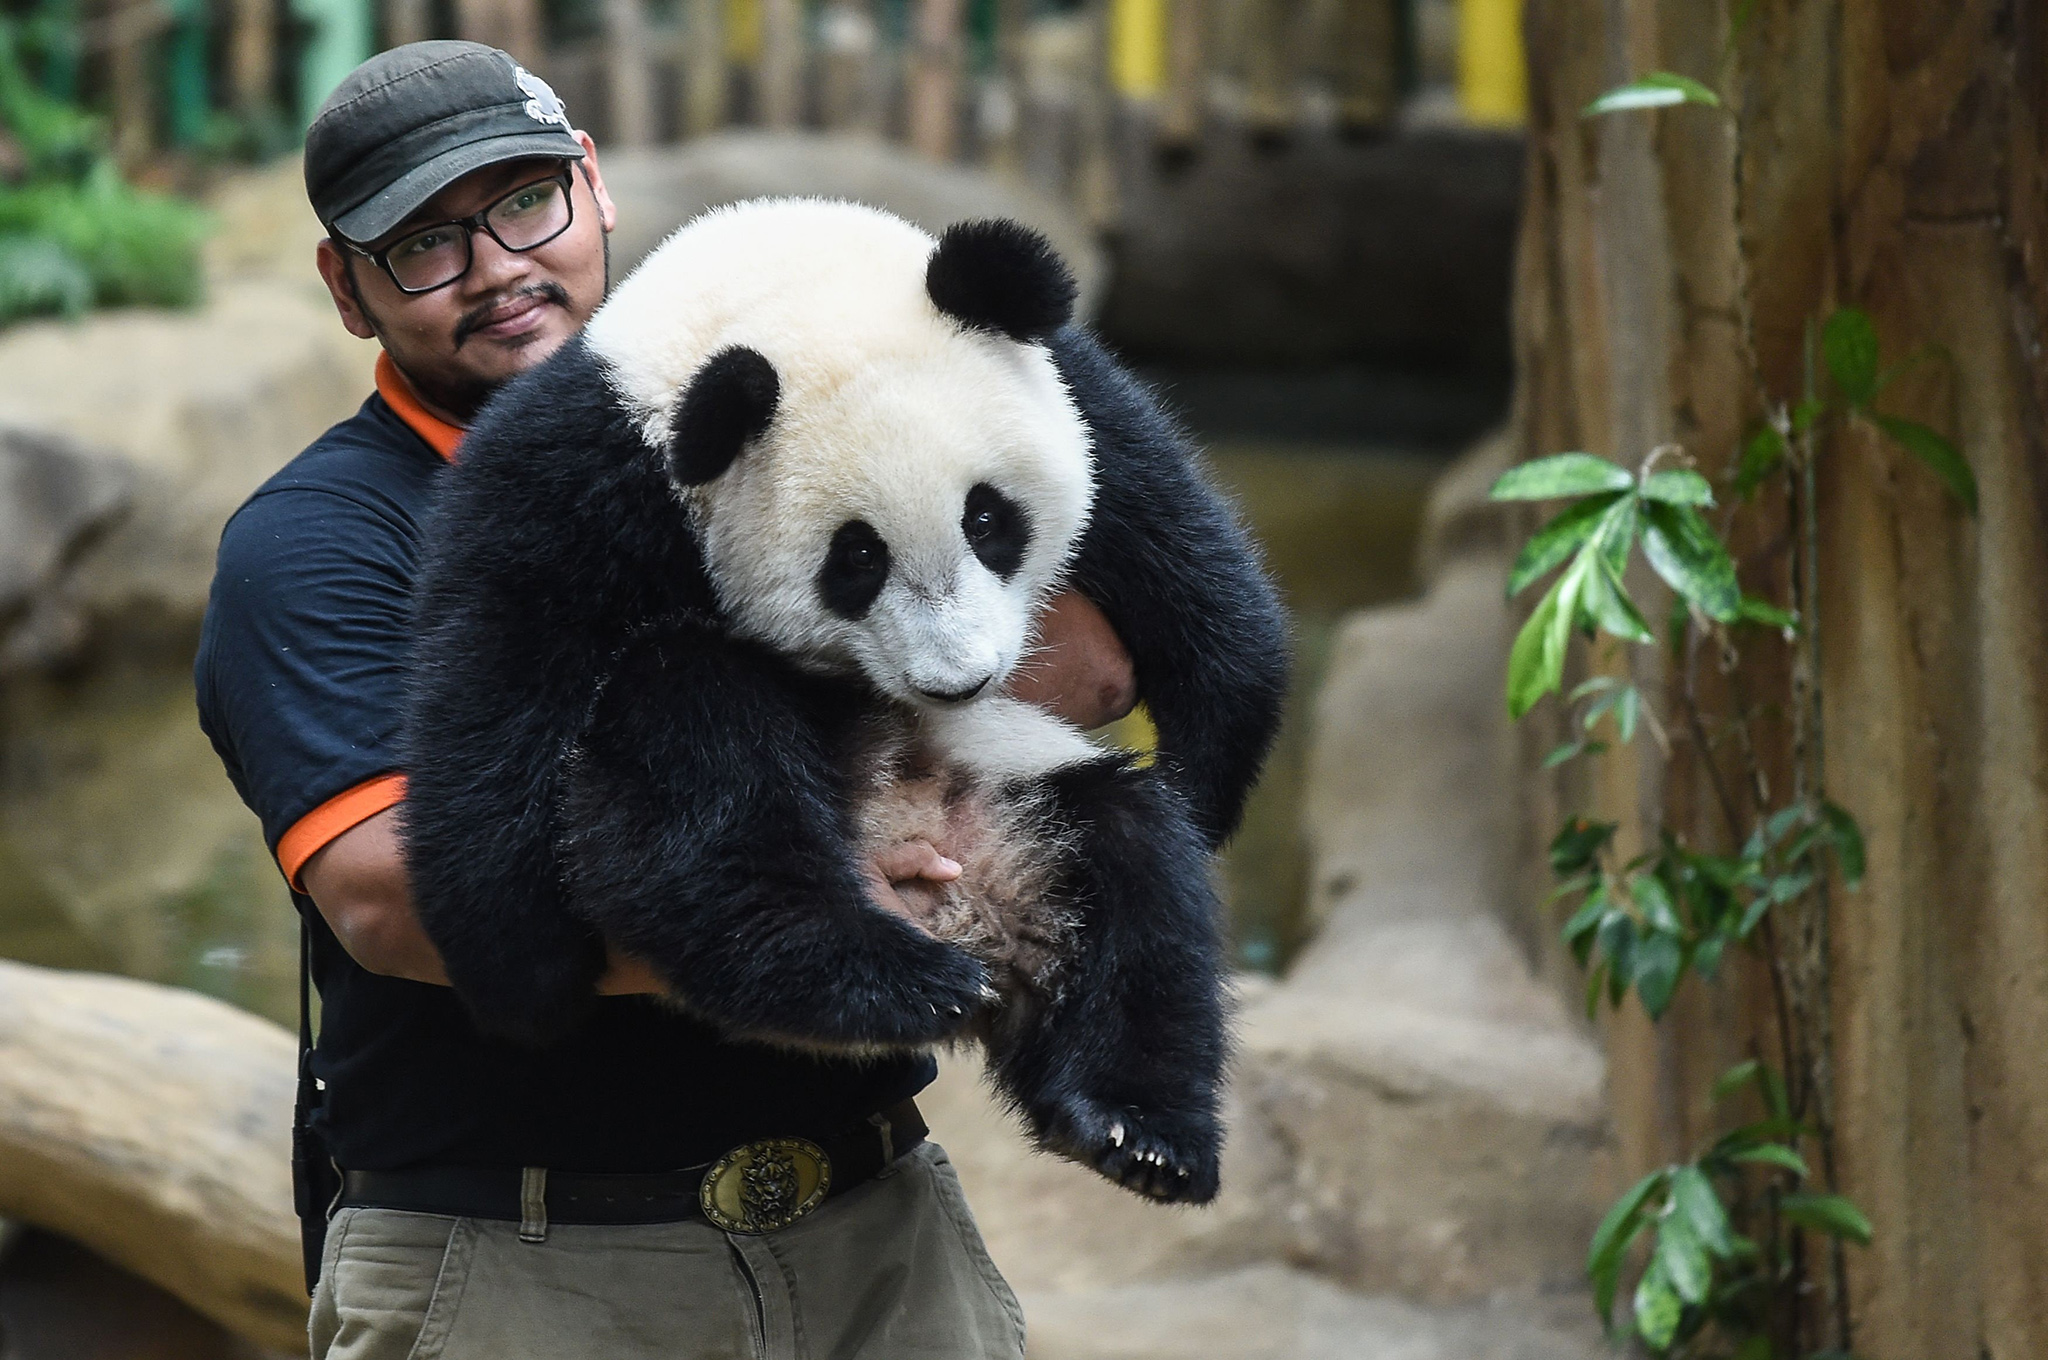 A keeper carries one-year-old female giant panda cub Nuan Nuan inside her enclosure during joint birthday celebrations for the panda and its ten-year-old mother Liang Liang at the National Zoo in Kuala Lumpur on August 23, 2016.  Giant pandas Liang Liang, aged 10, and her Malaysian-born cub Nuan Nuan, 1, were born on August 23, 2006 and August 18, 2015 respectivetly. / AFP PHOTO / MOHD RASFANMOHD RASFAN/AFP/Getty Images